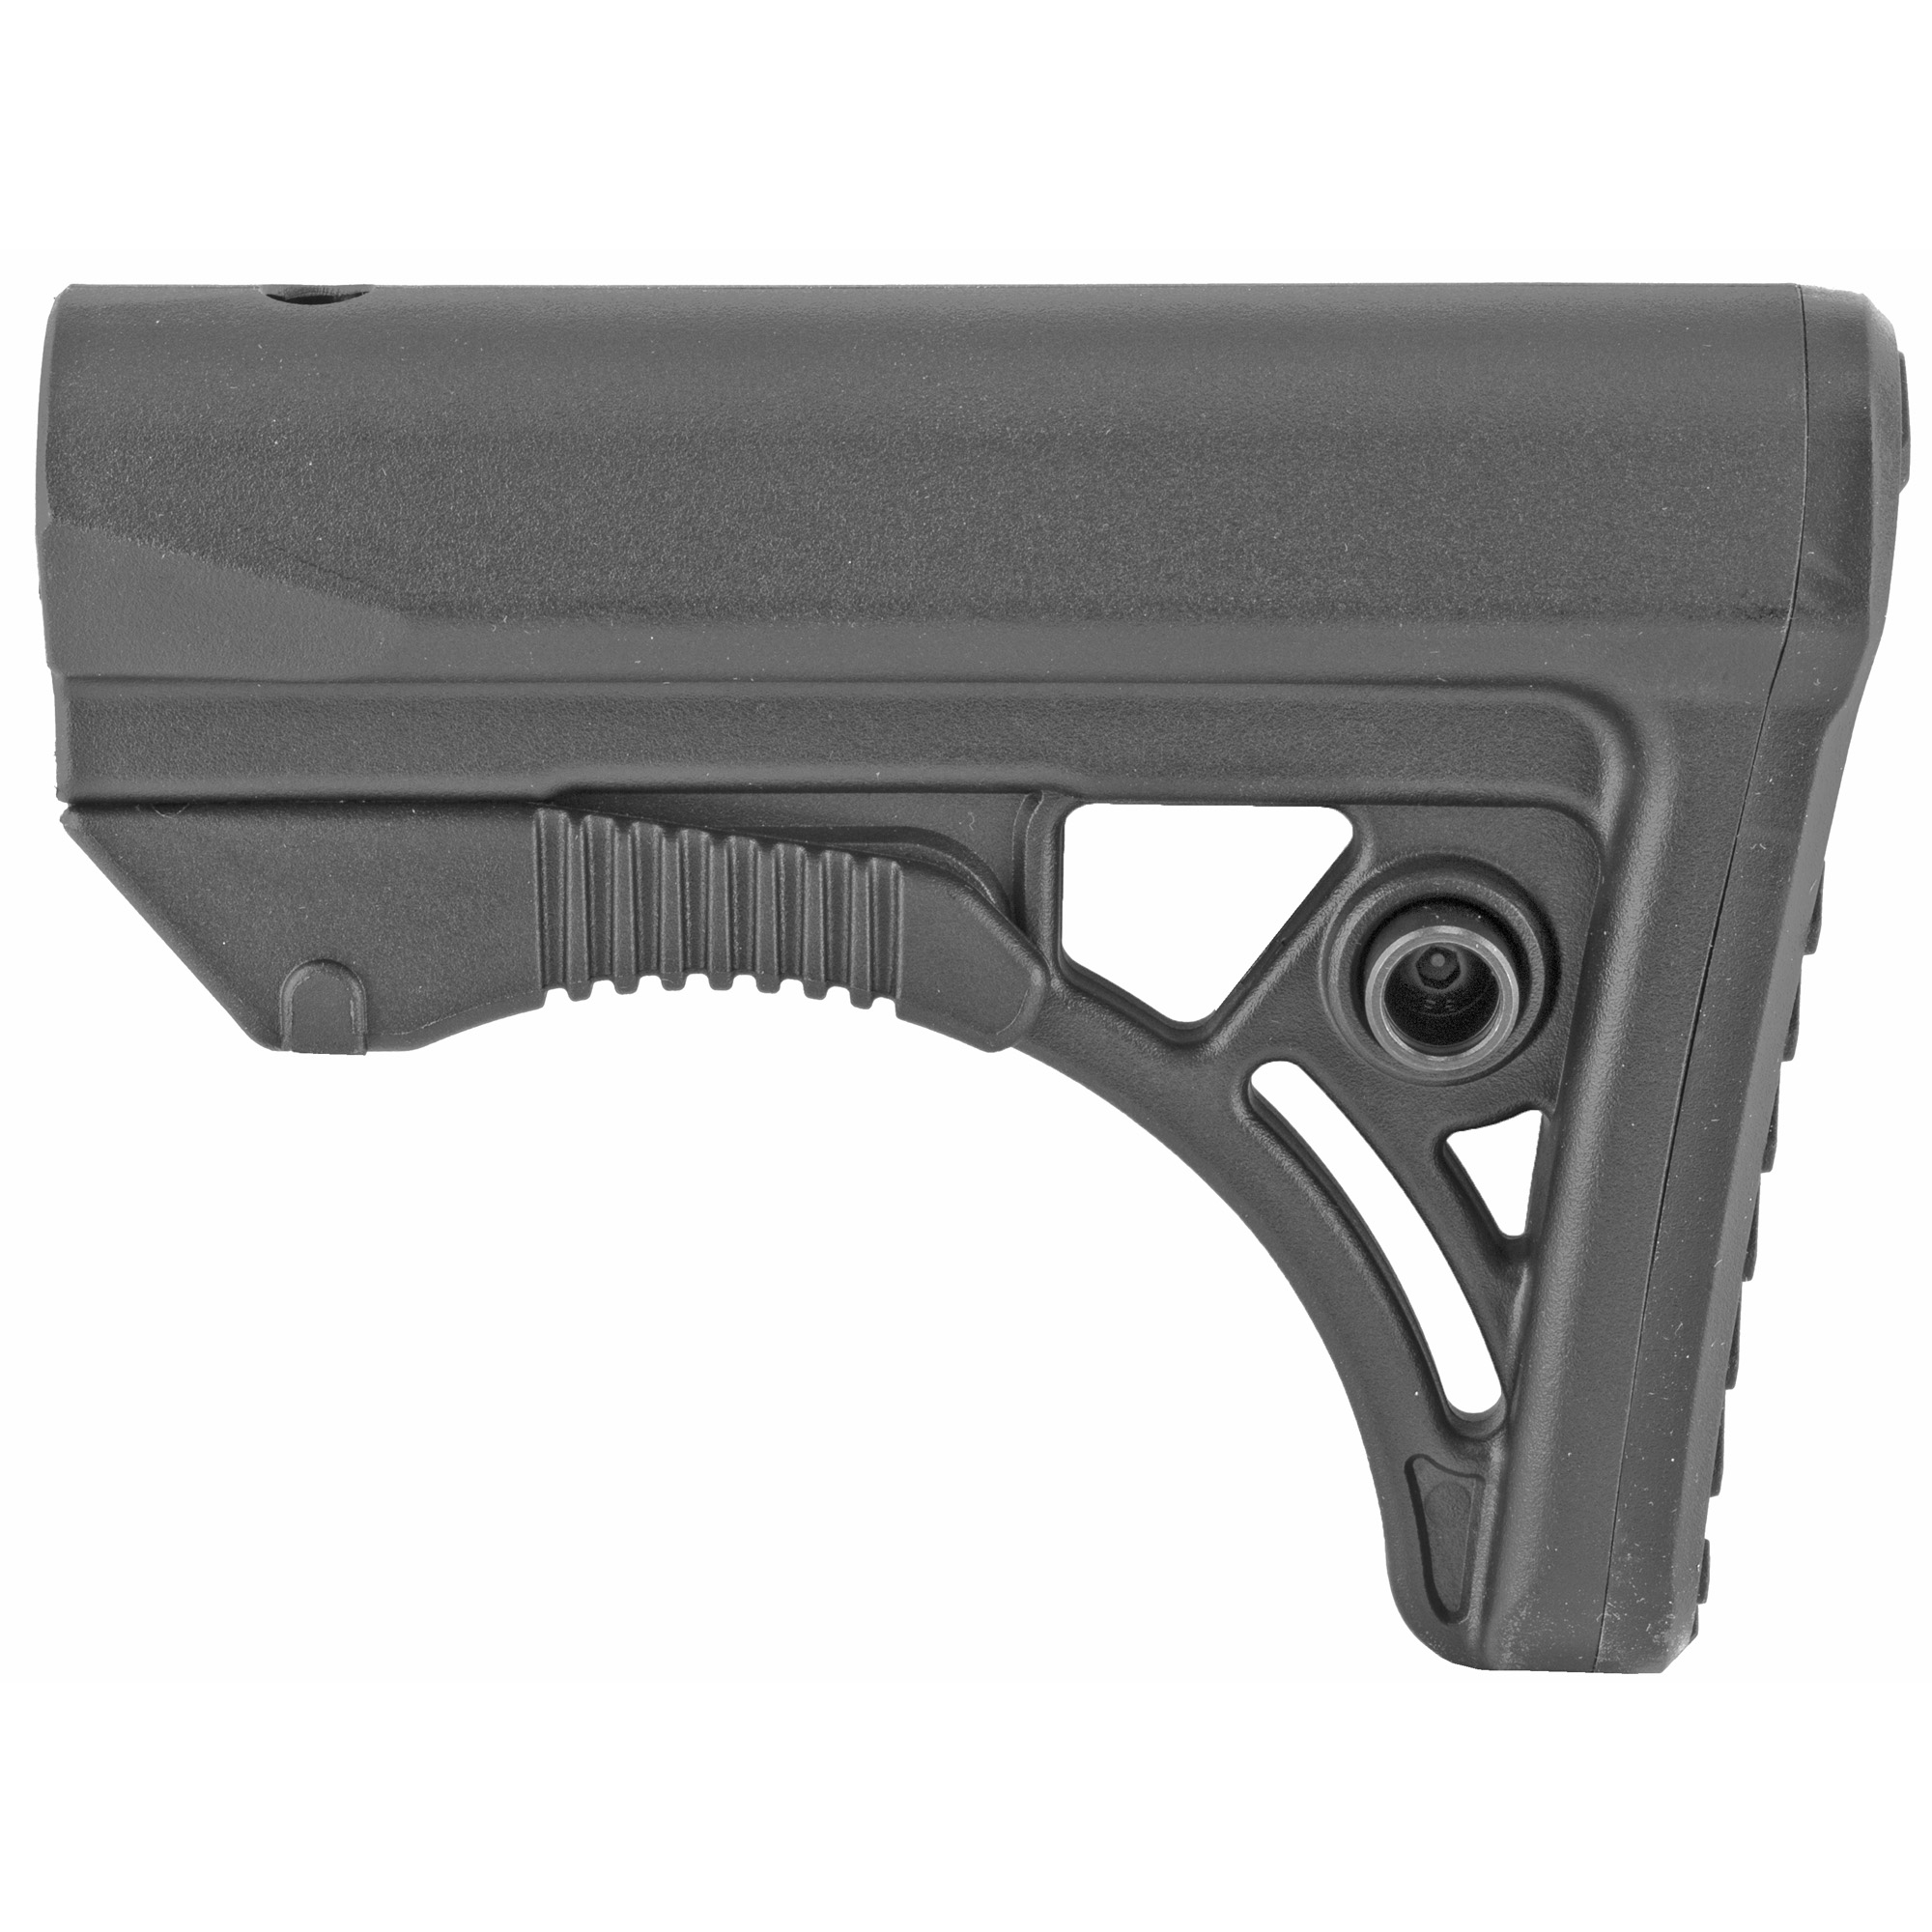 The Leapers UTG AR-15 PRO Model 4 Ops Ready S3 Stock is molded from high impact reinforced polymer materials. It features an ergonomically chamfered rubberized butt pad and a slanted cheek rest that enhances shooting stability and consistent firearm control. The stock has an integral ambidextrous sling loop and ambidextrous QD sling swivel housing for left or right handed shooters. The stock has fully dehorned corners and melted contours for snag-free use. Includes polymer stock only